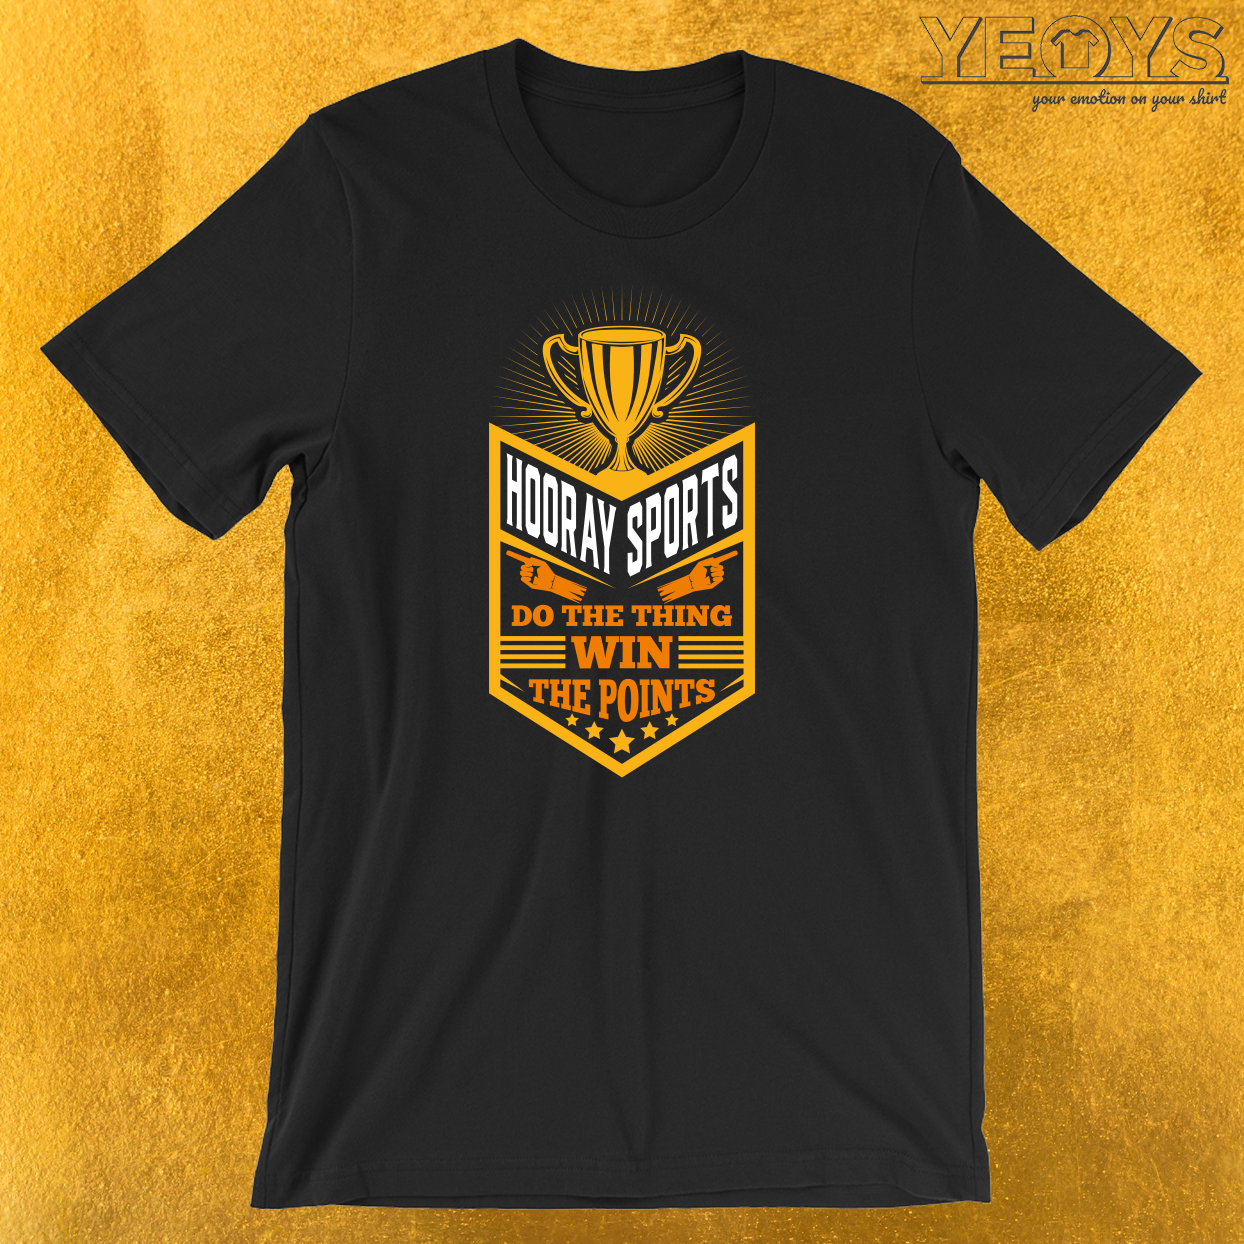 Hooray Sports Do The Thing Win Points T-Shirt